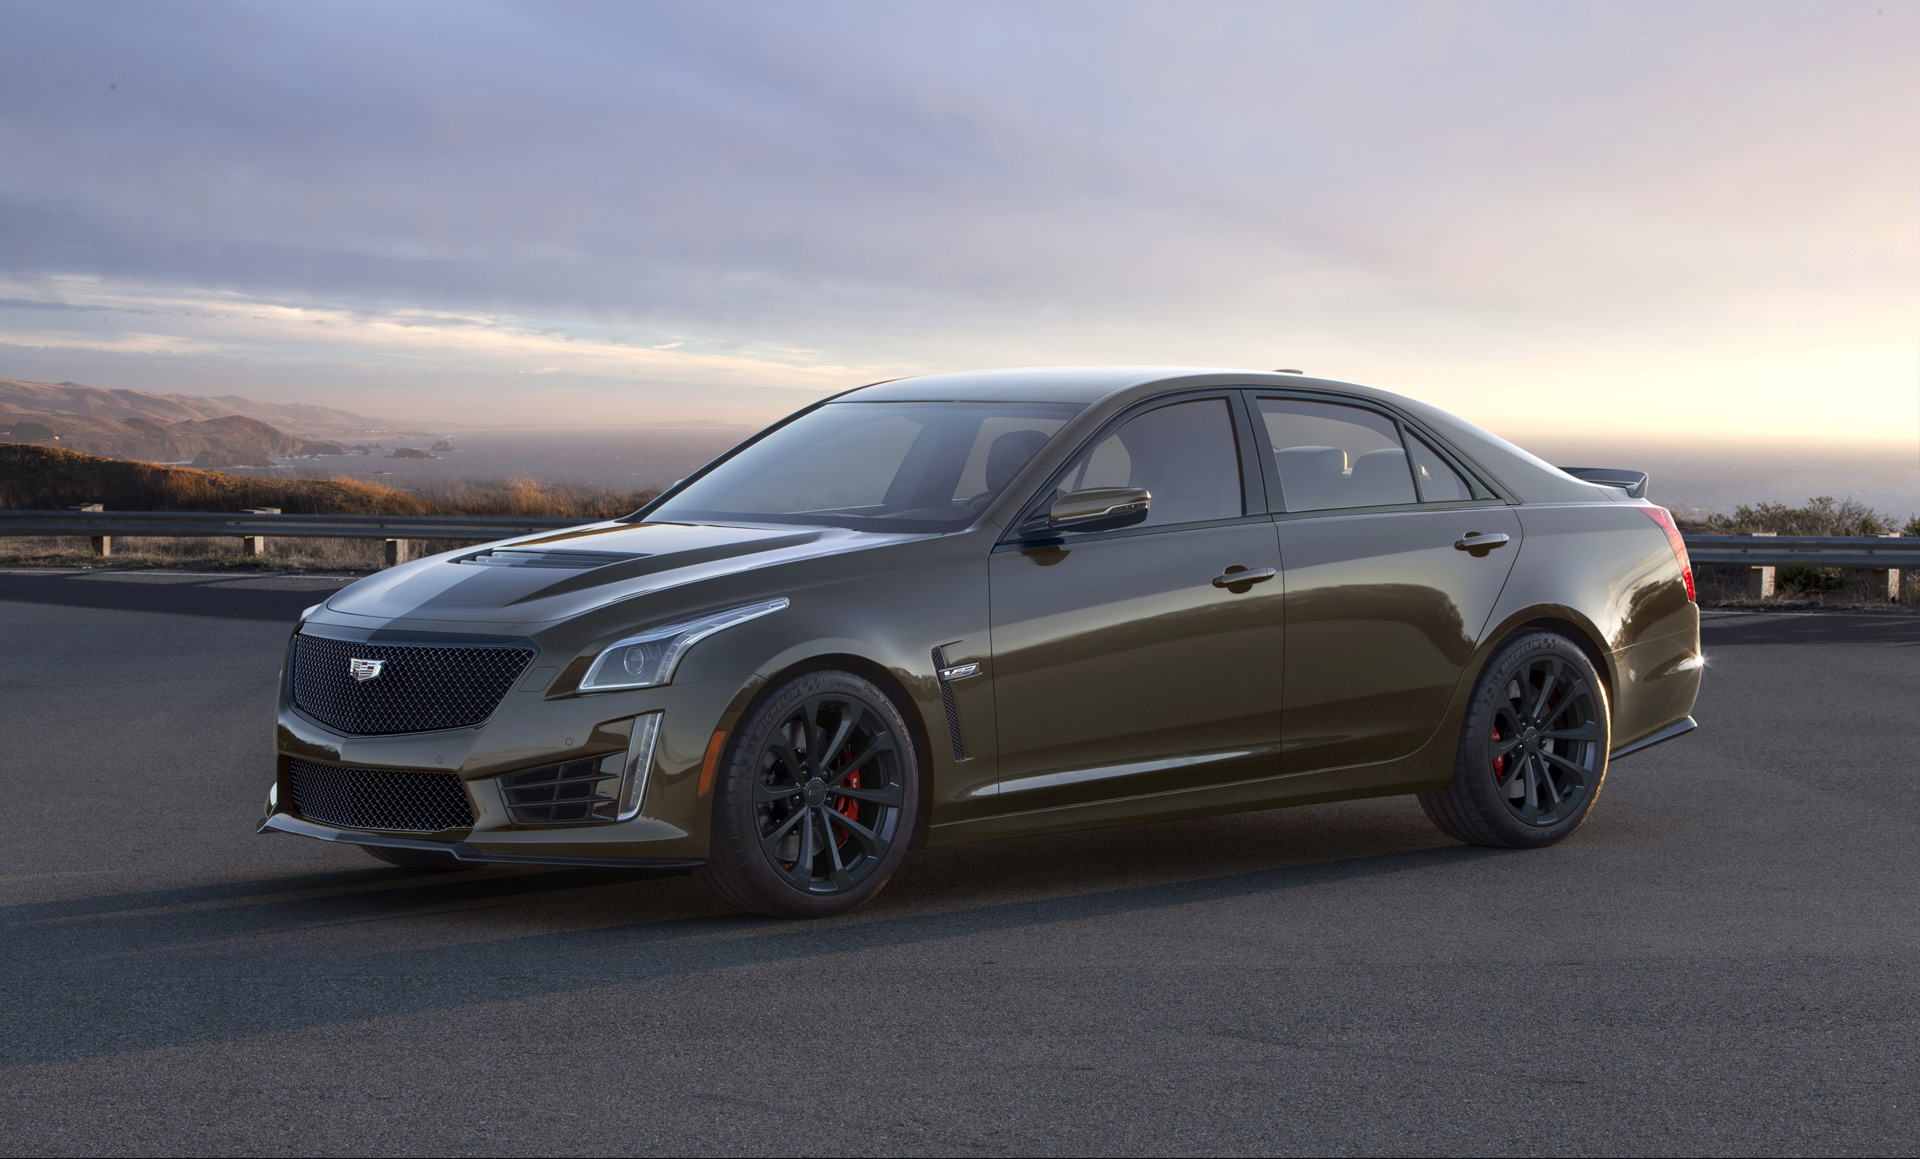 Cadillac Marks 15 Years Of V-Series With Pedestal Edition